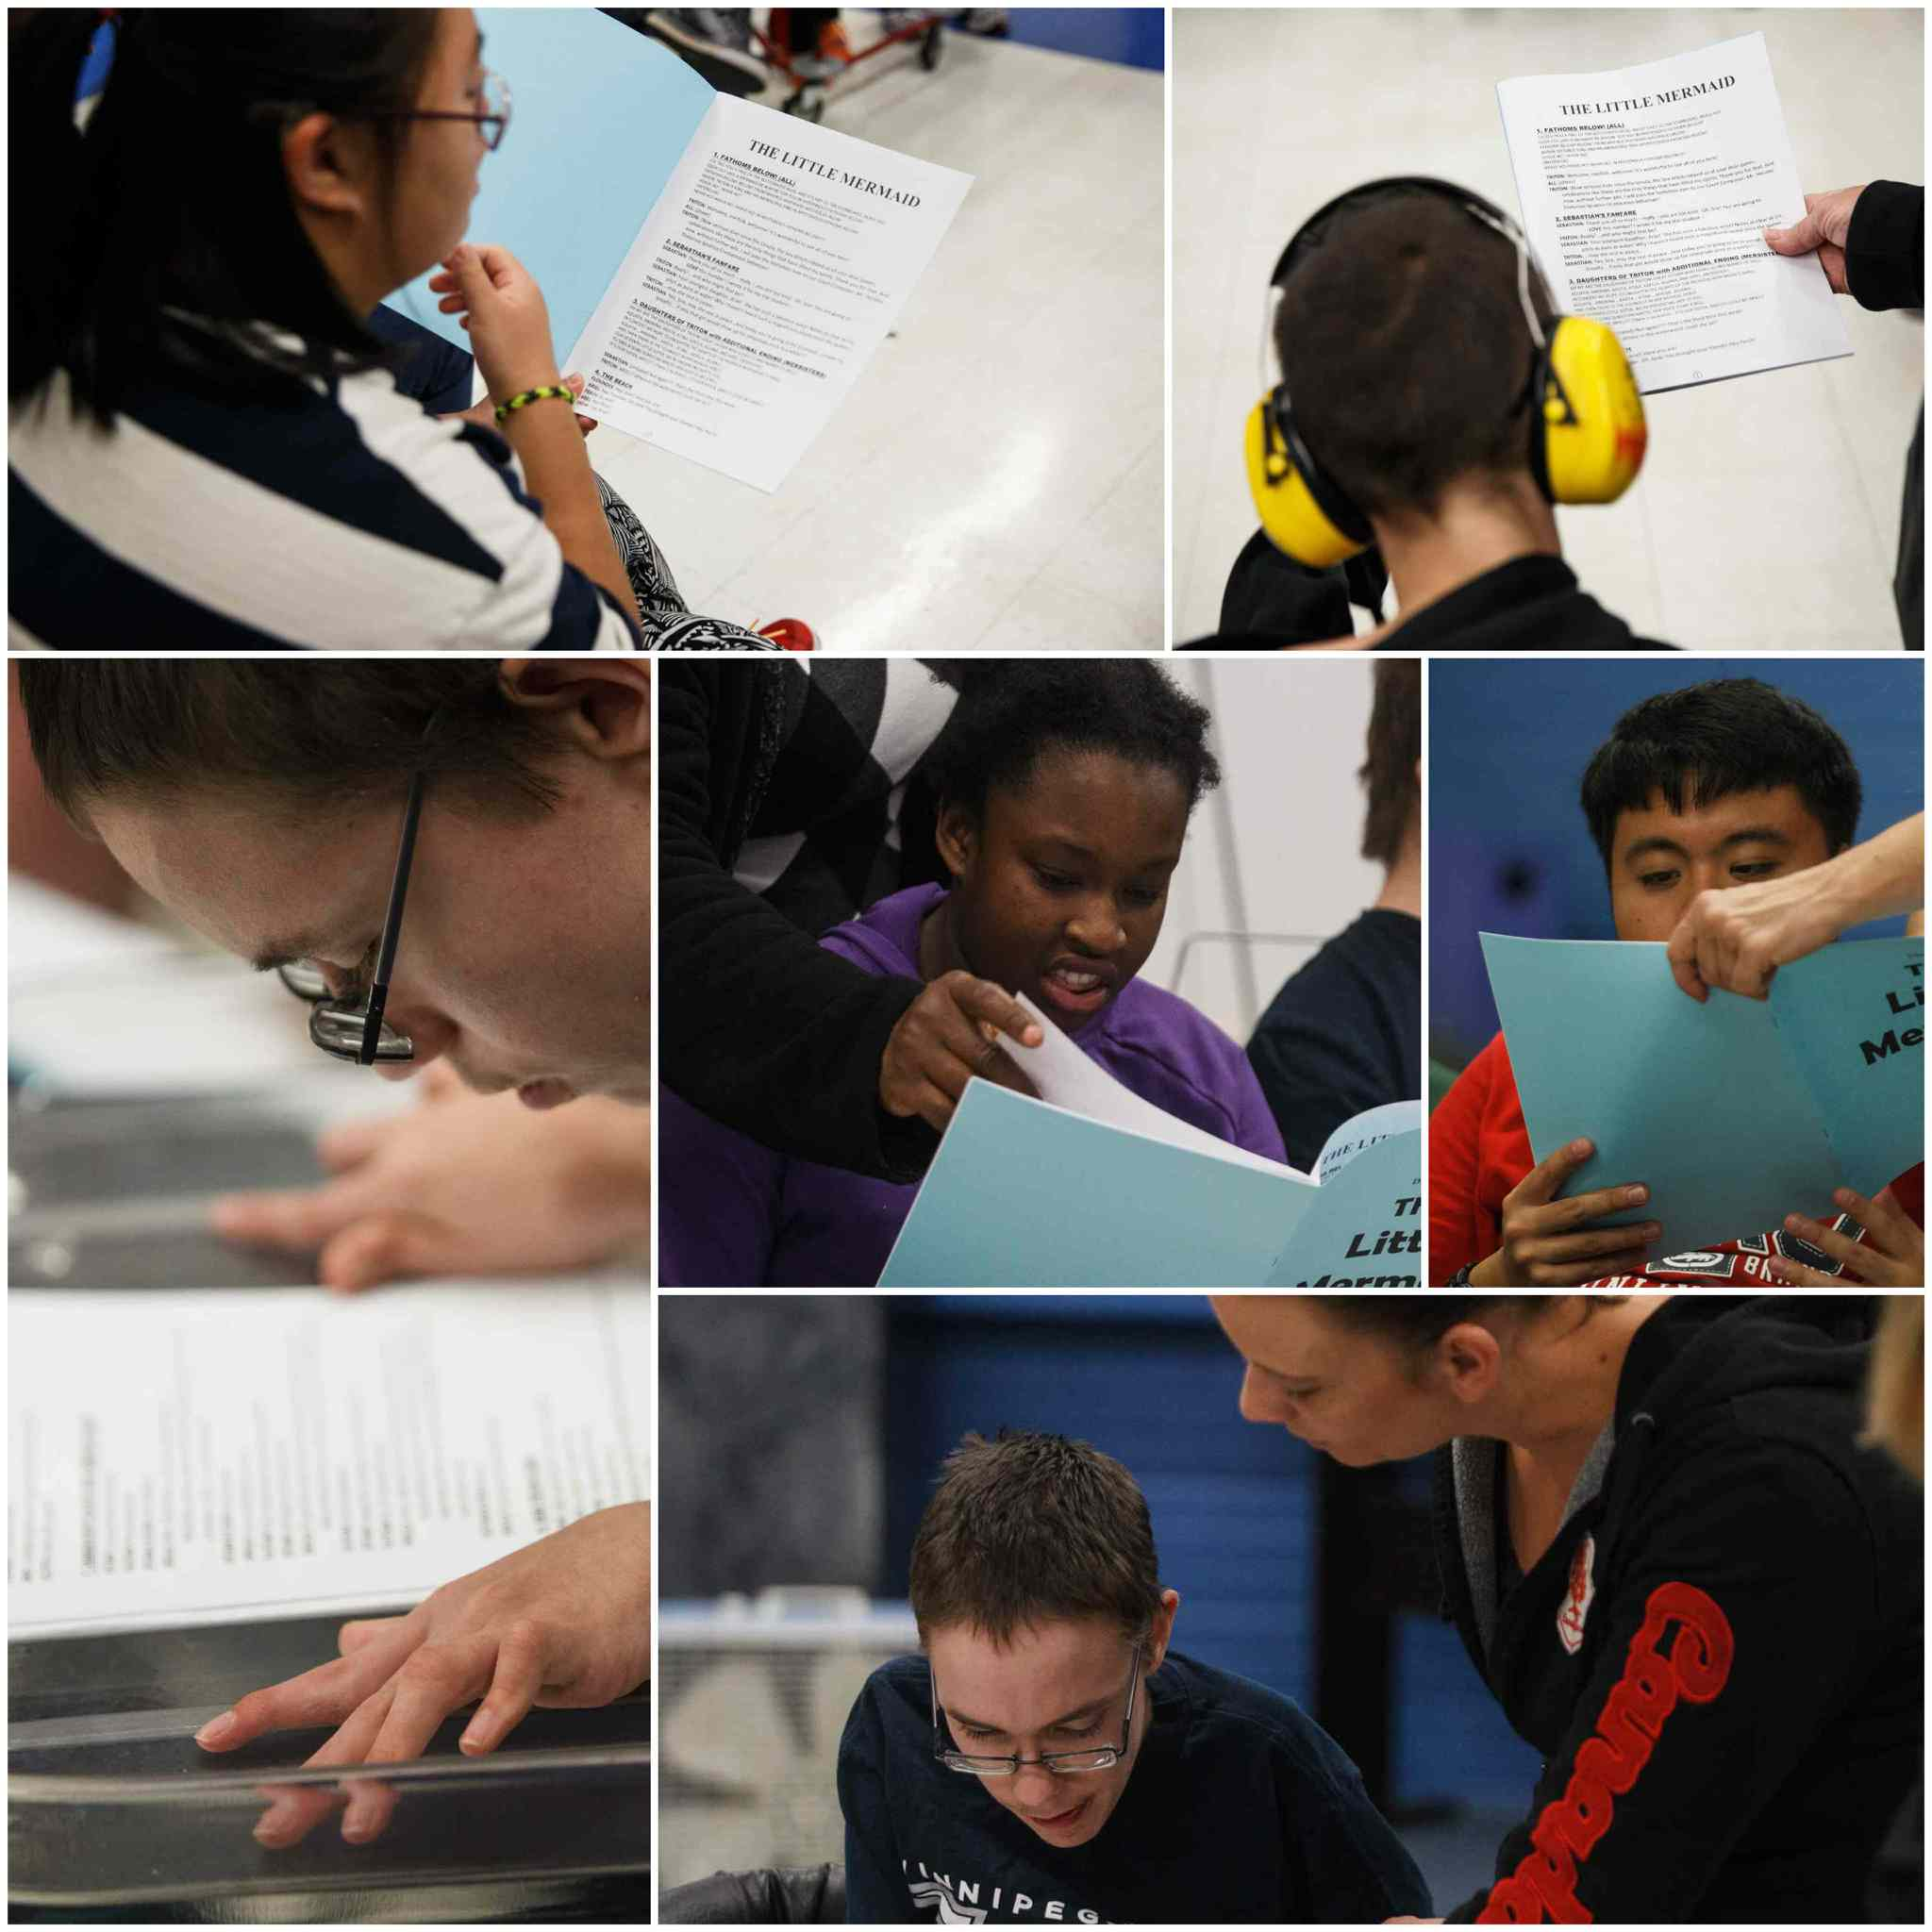 Students get their first look at the script for The Little Mermaid.  (Mike Deal / Winnipeg Free Press)